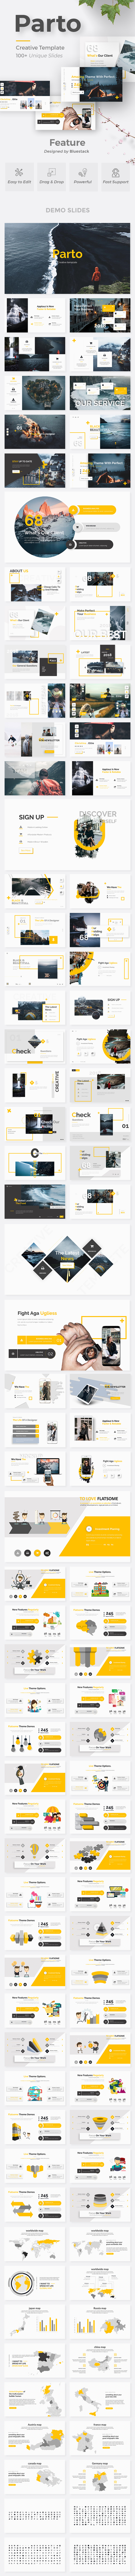 Parto Creative Google Slide Template - Google Slides Presentation Templates